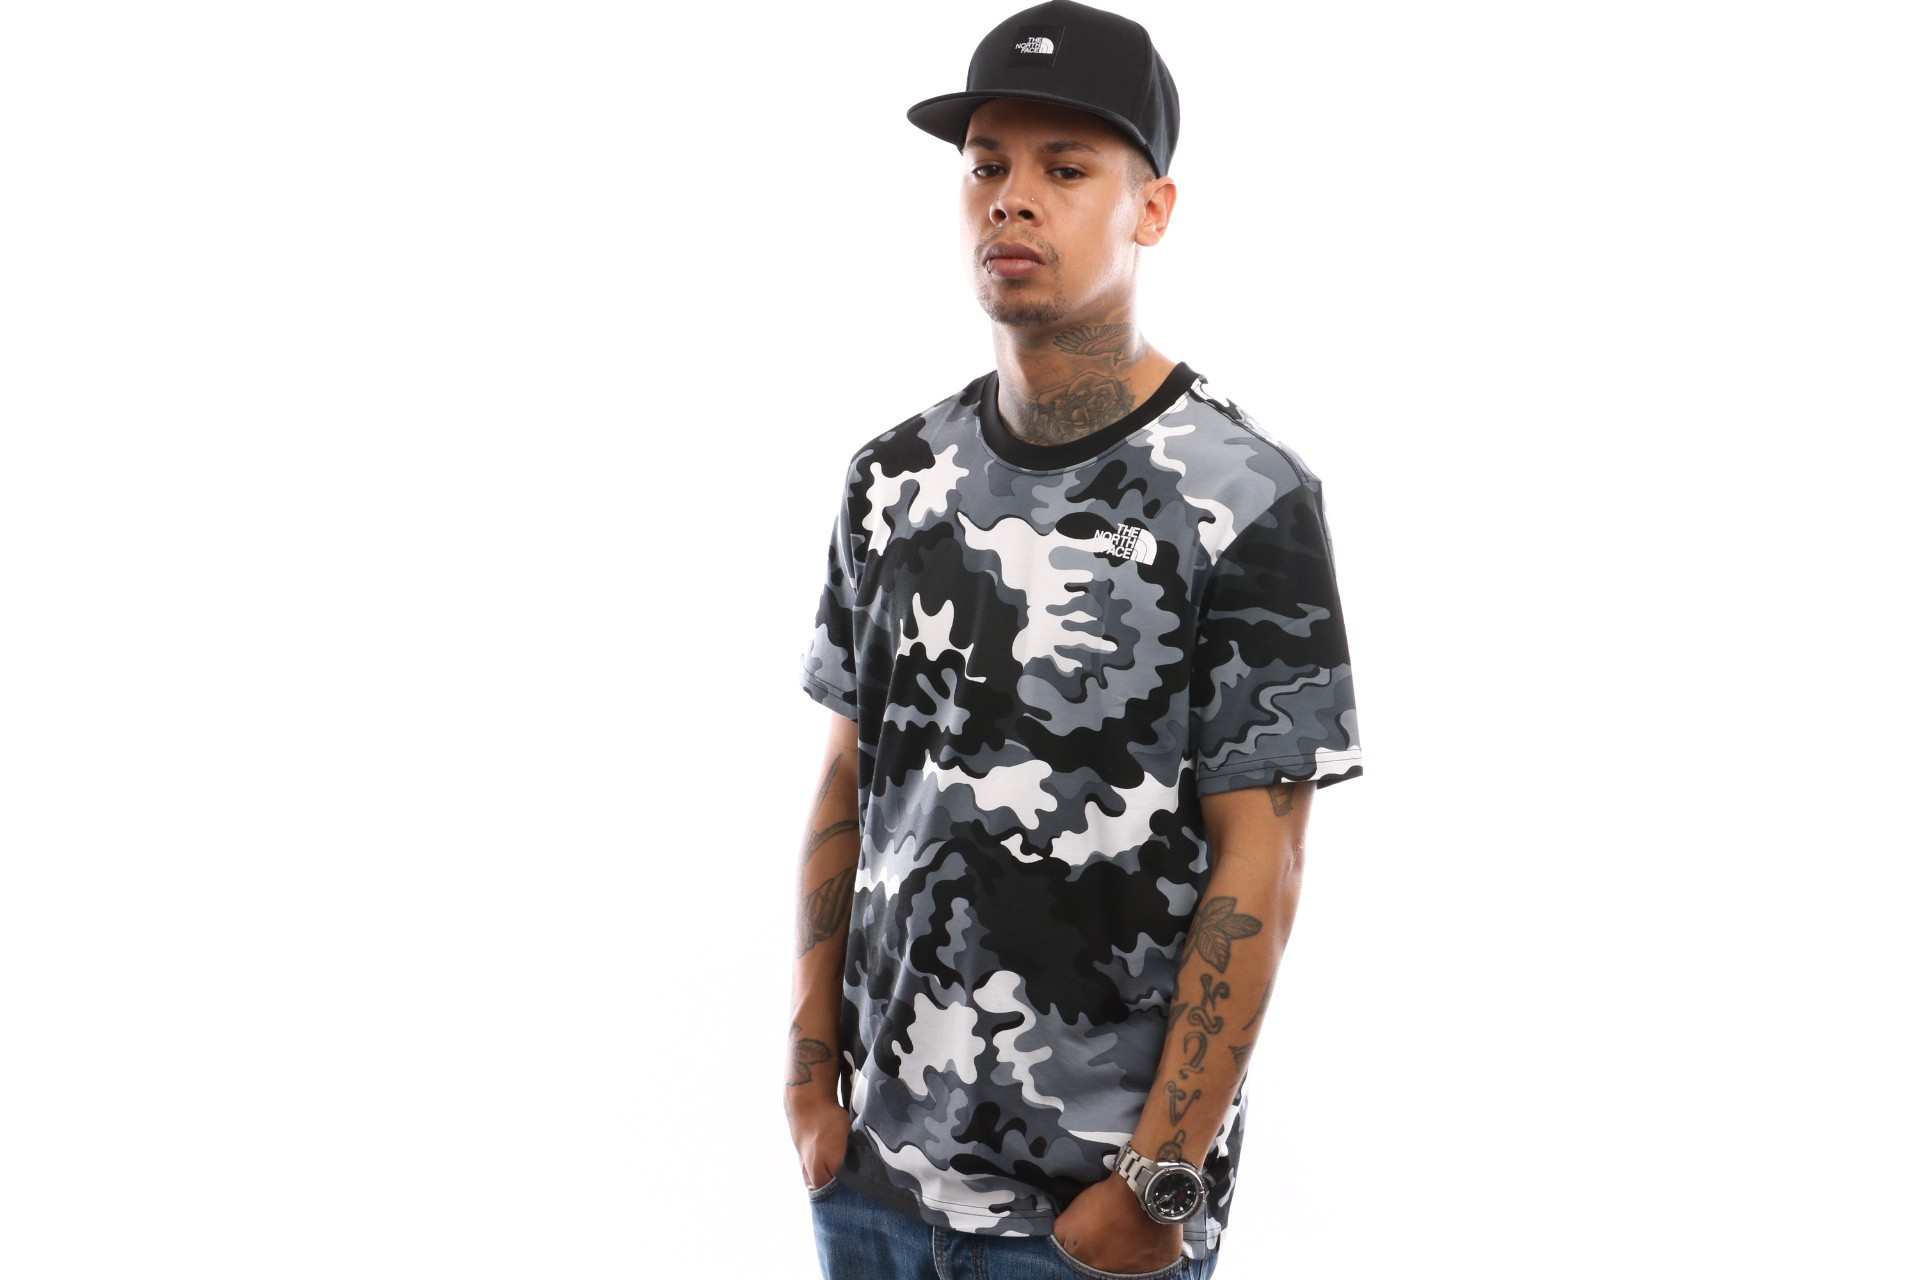 Afbeelding van The North Face M S/S Red Box Tee T92Tx29Ve T Shirt Tnf Black Psychedlic Prnt